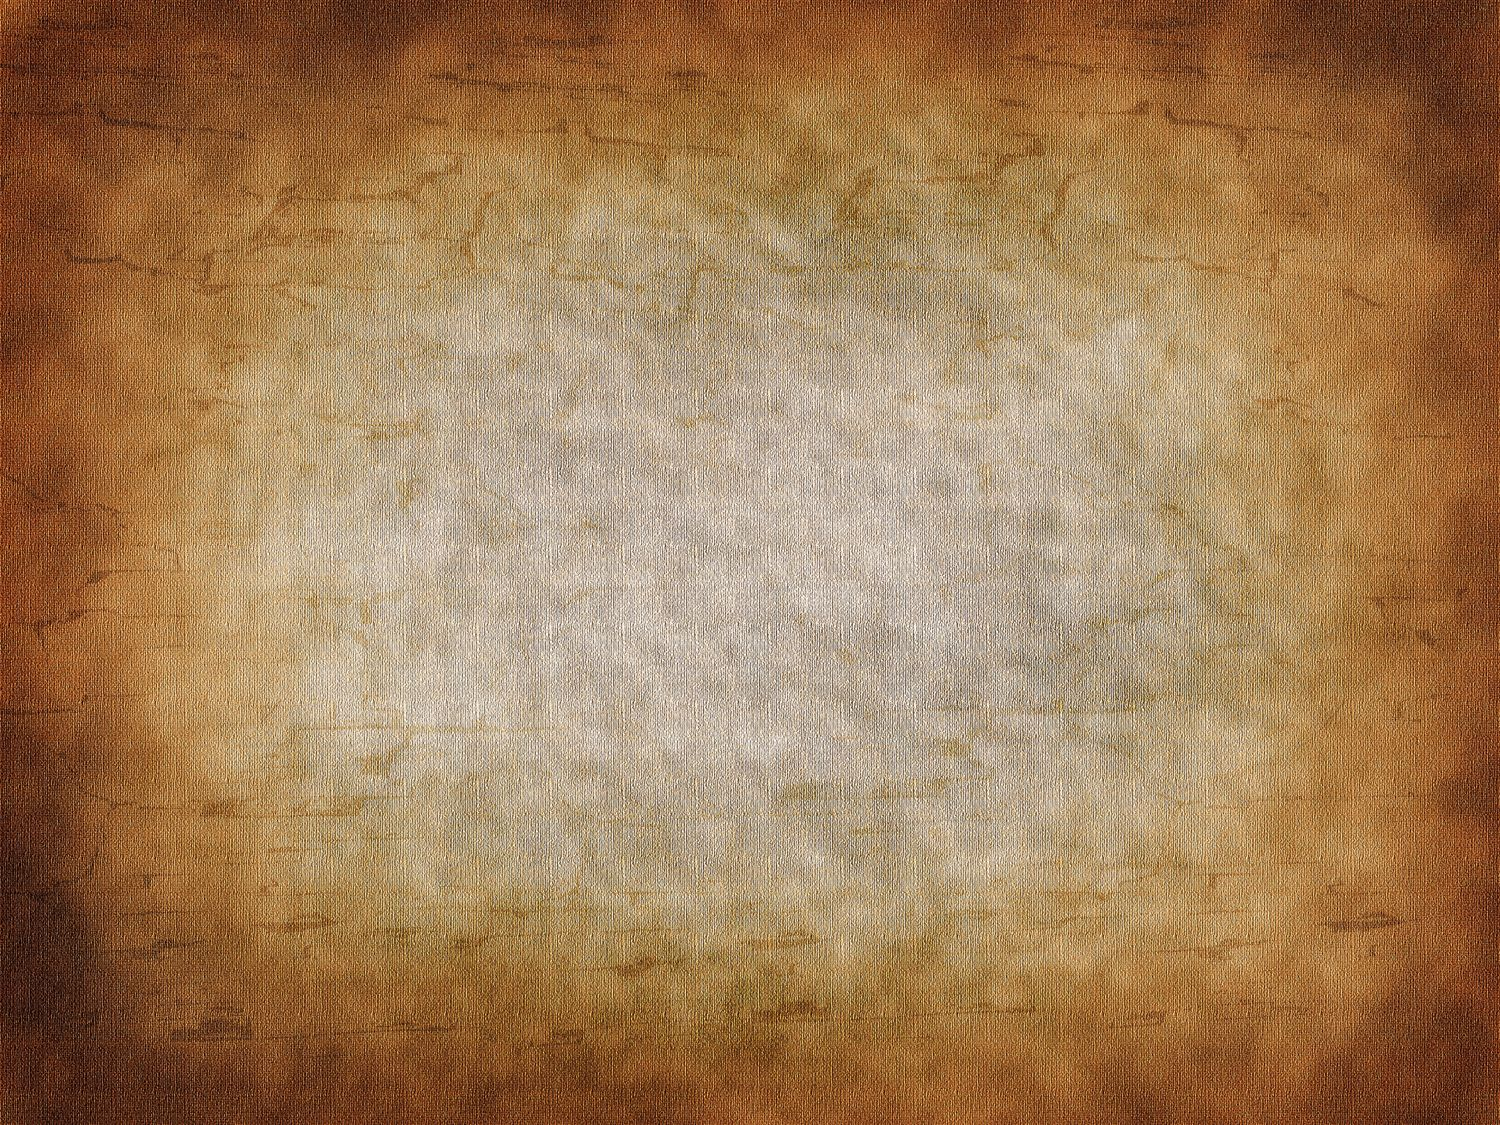 western backgrounds great source of free textured backgrounds in